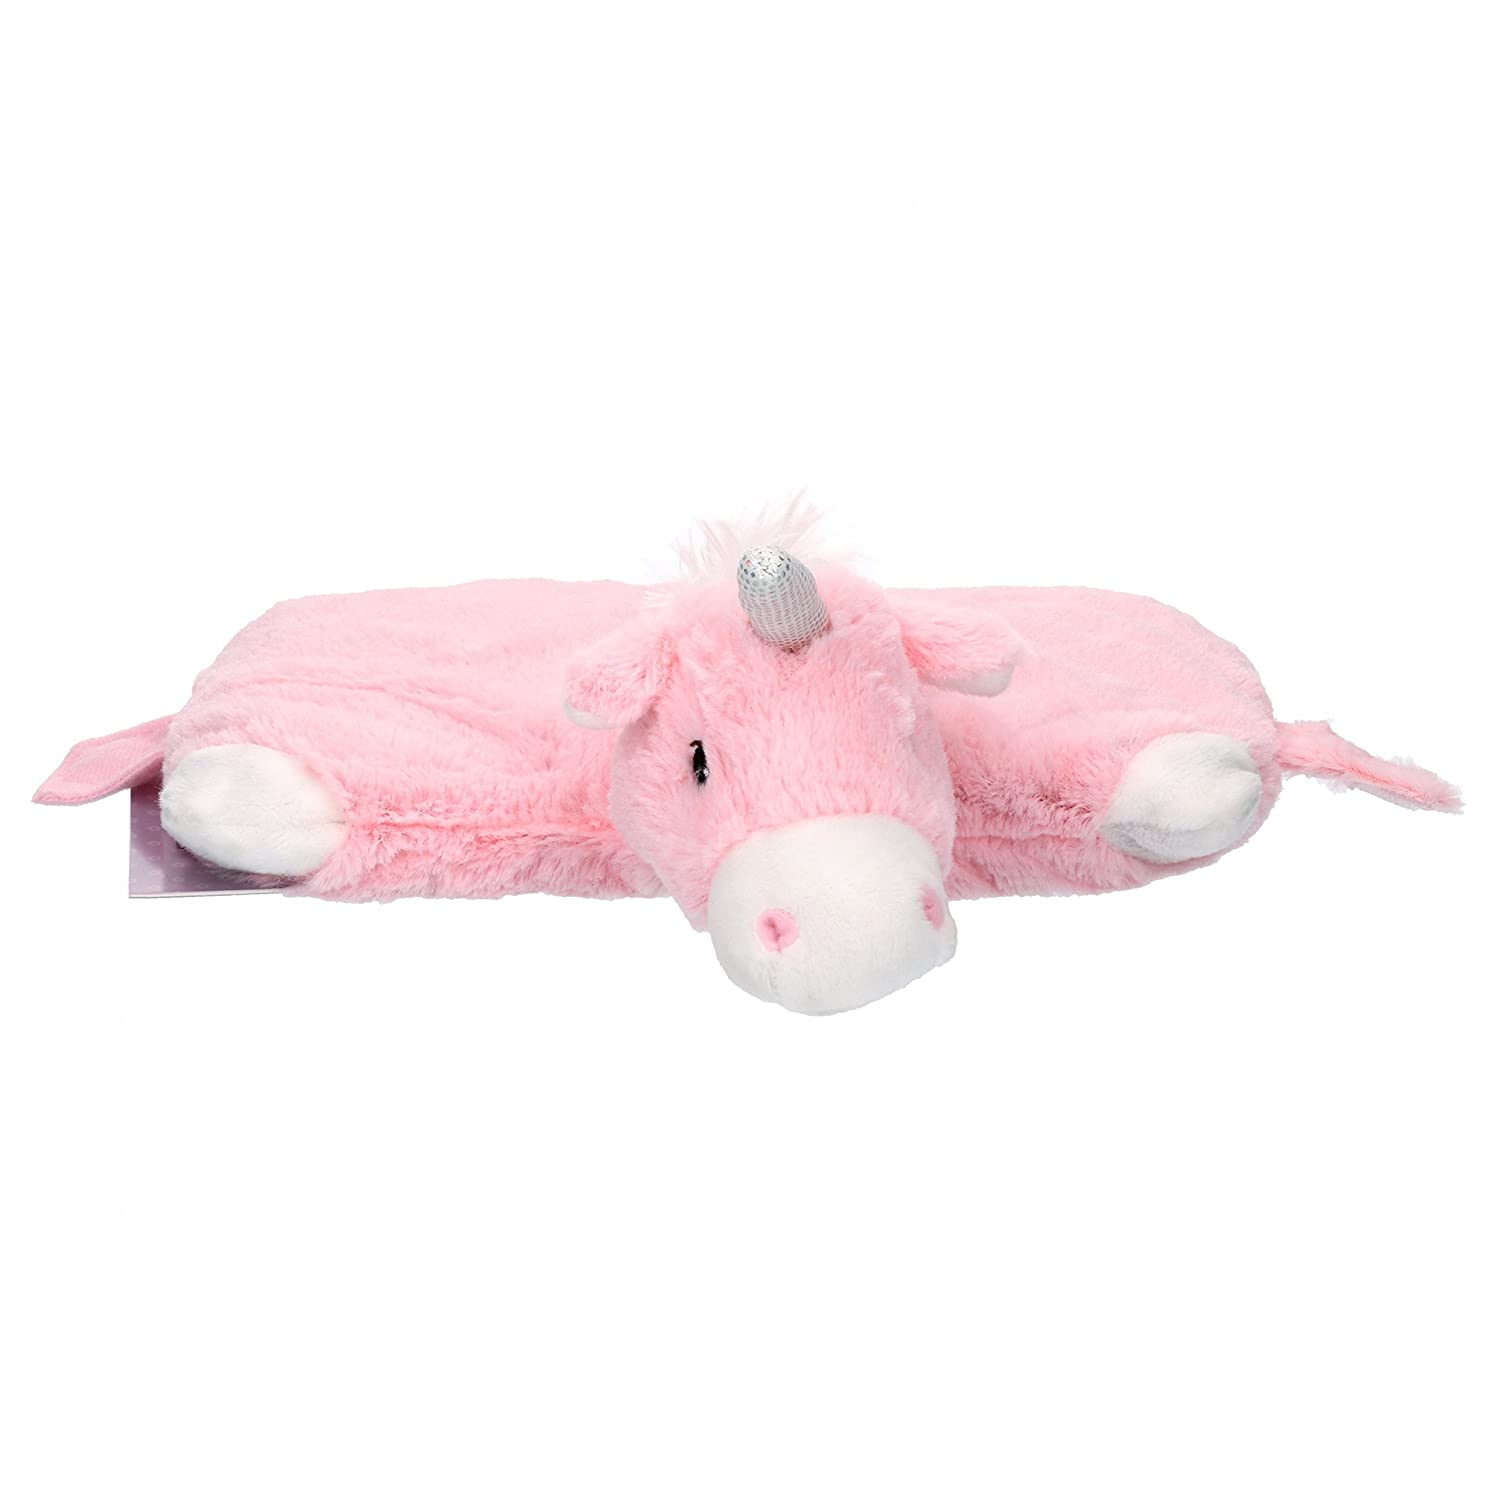 Greenlife Value Warmies Stuffed Heat Pillow Unicorn Pink with Natural Millet and Lavender Filling, Microwave, Warming + Soothing Heat Teddy